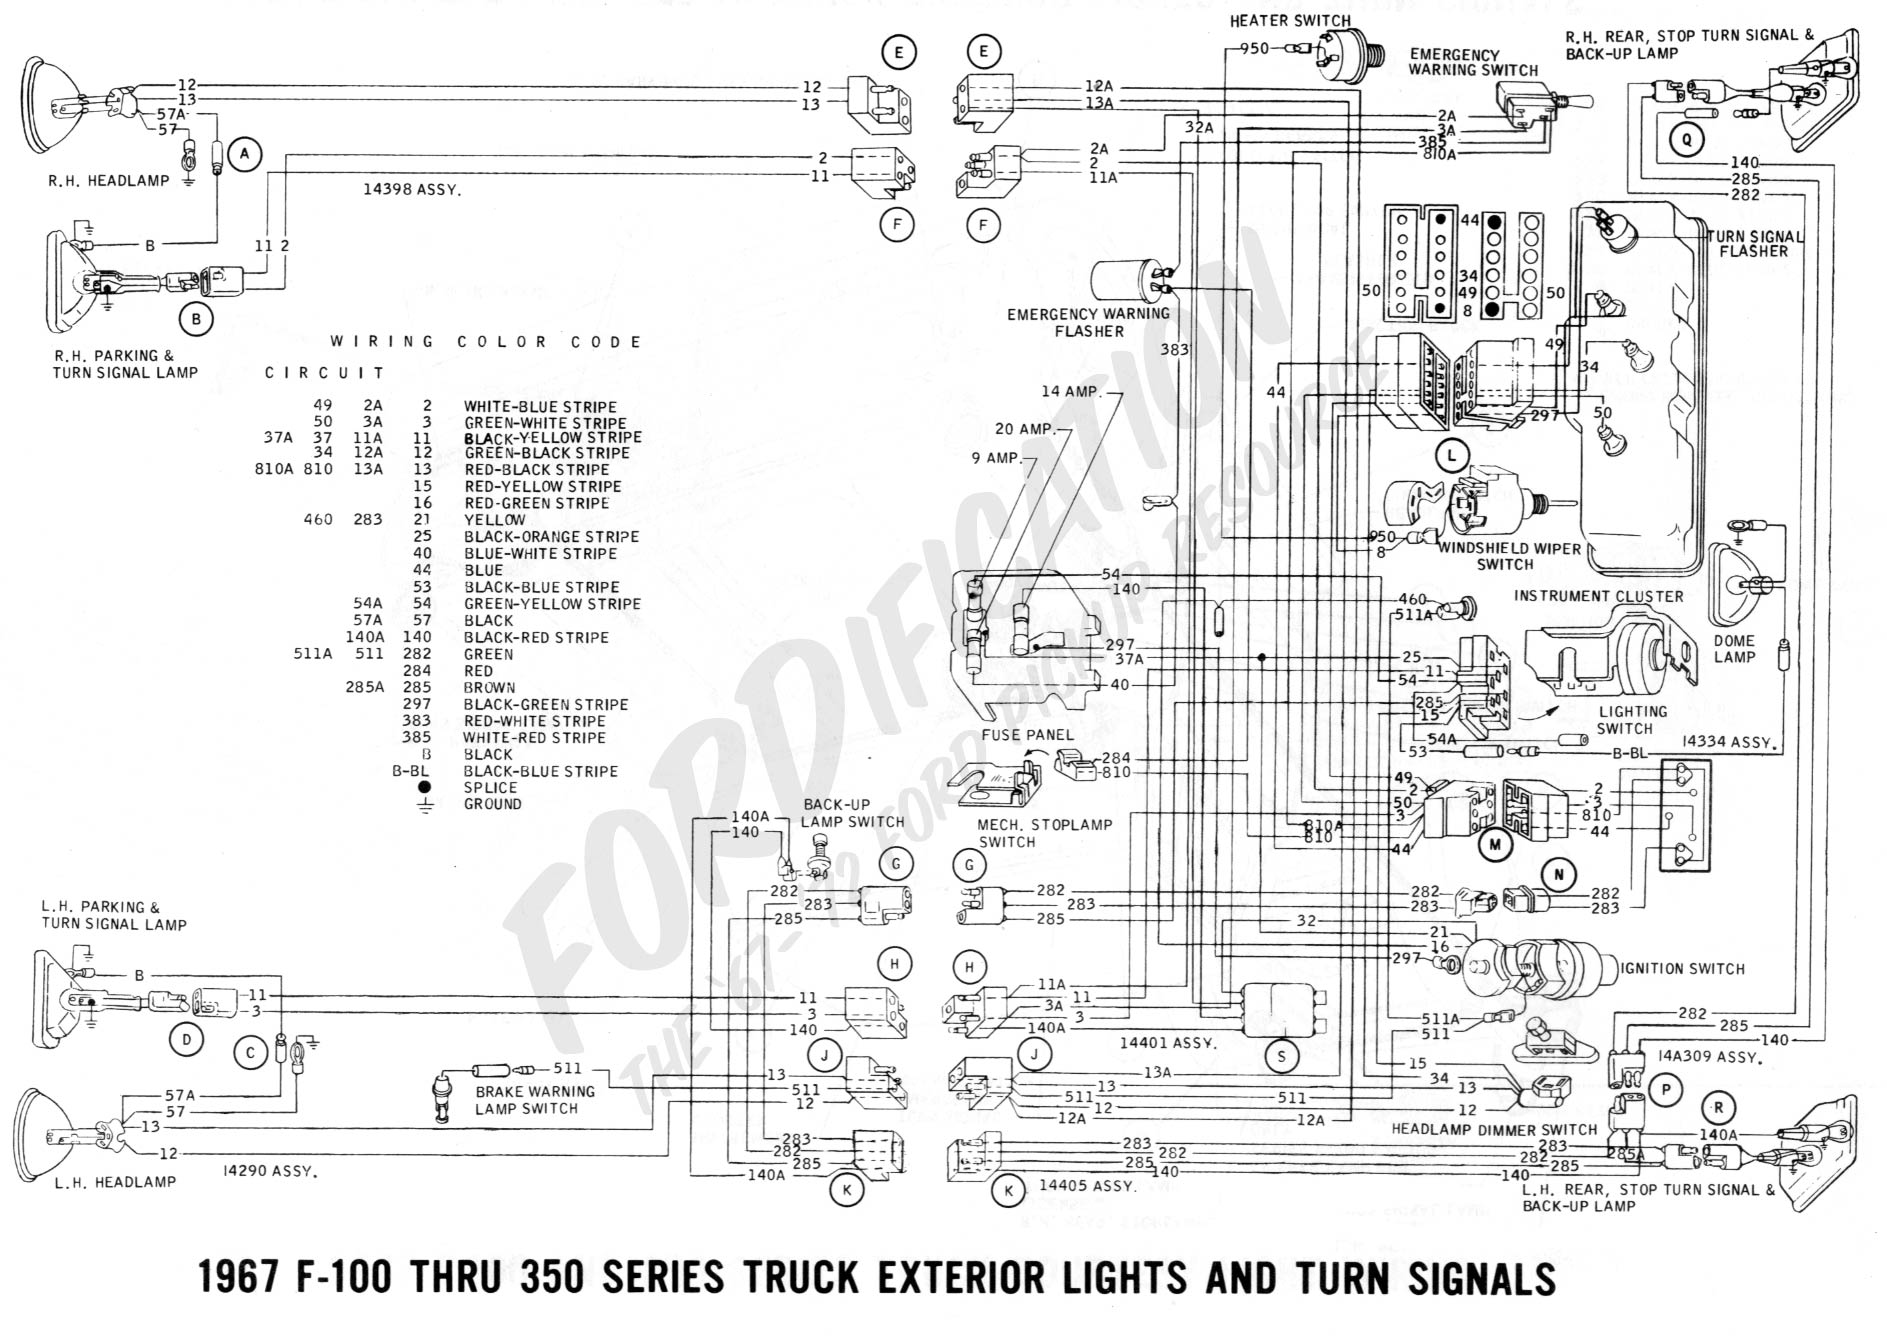 67 chevelle wiring schematic data wiring diagram update rh 18 asdcc petersen guitars de 67 chevelle headlight wiring diagram 67 chevelle headlight wiring diagram